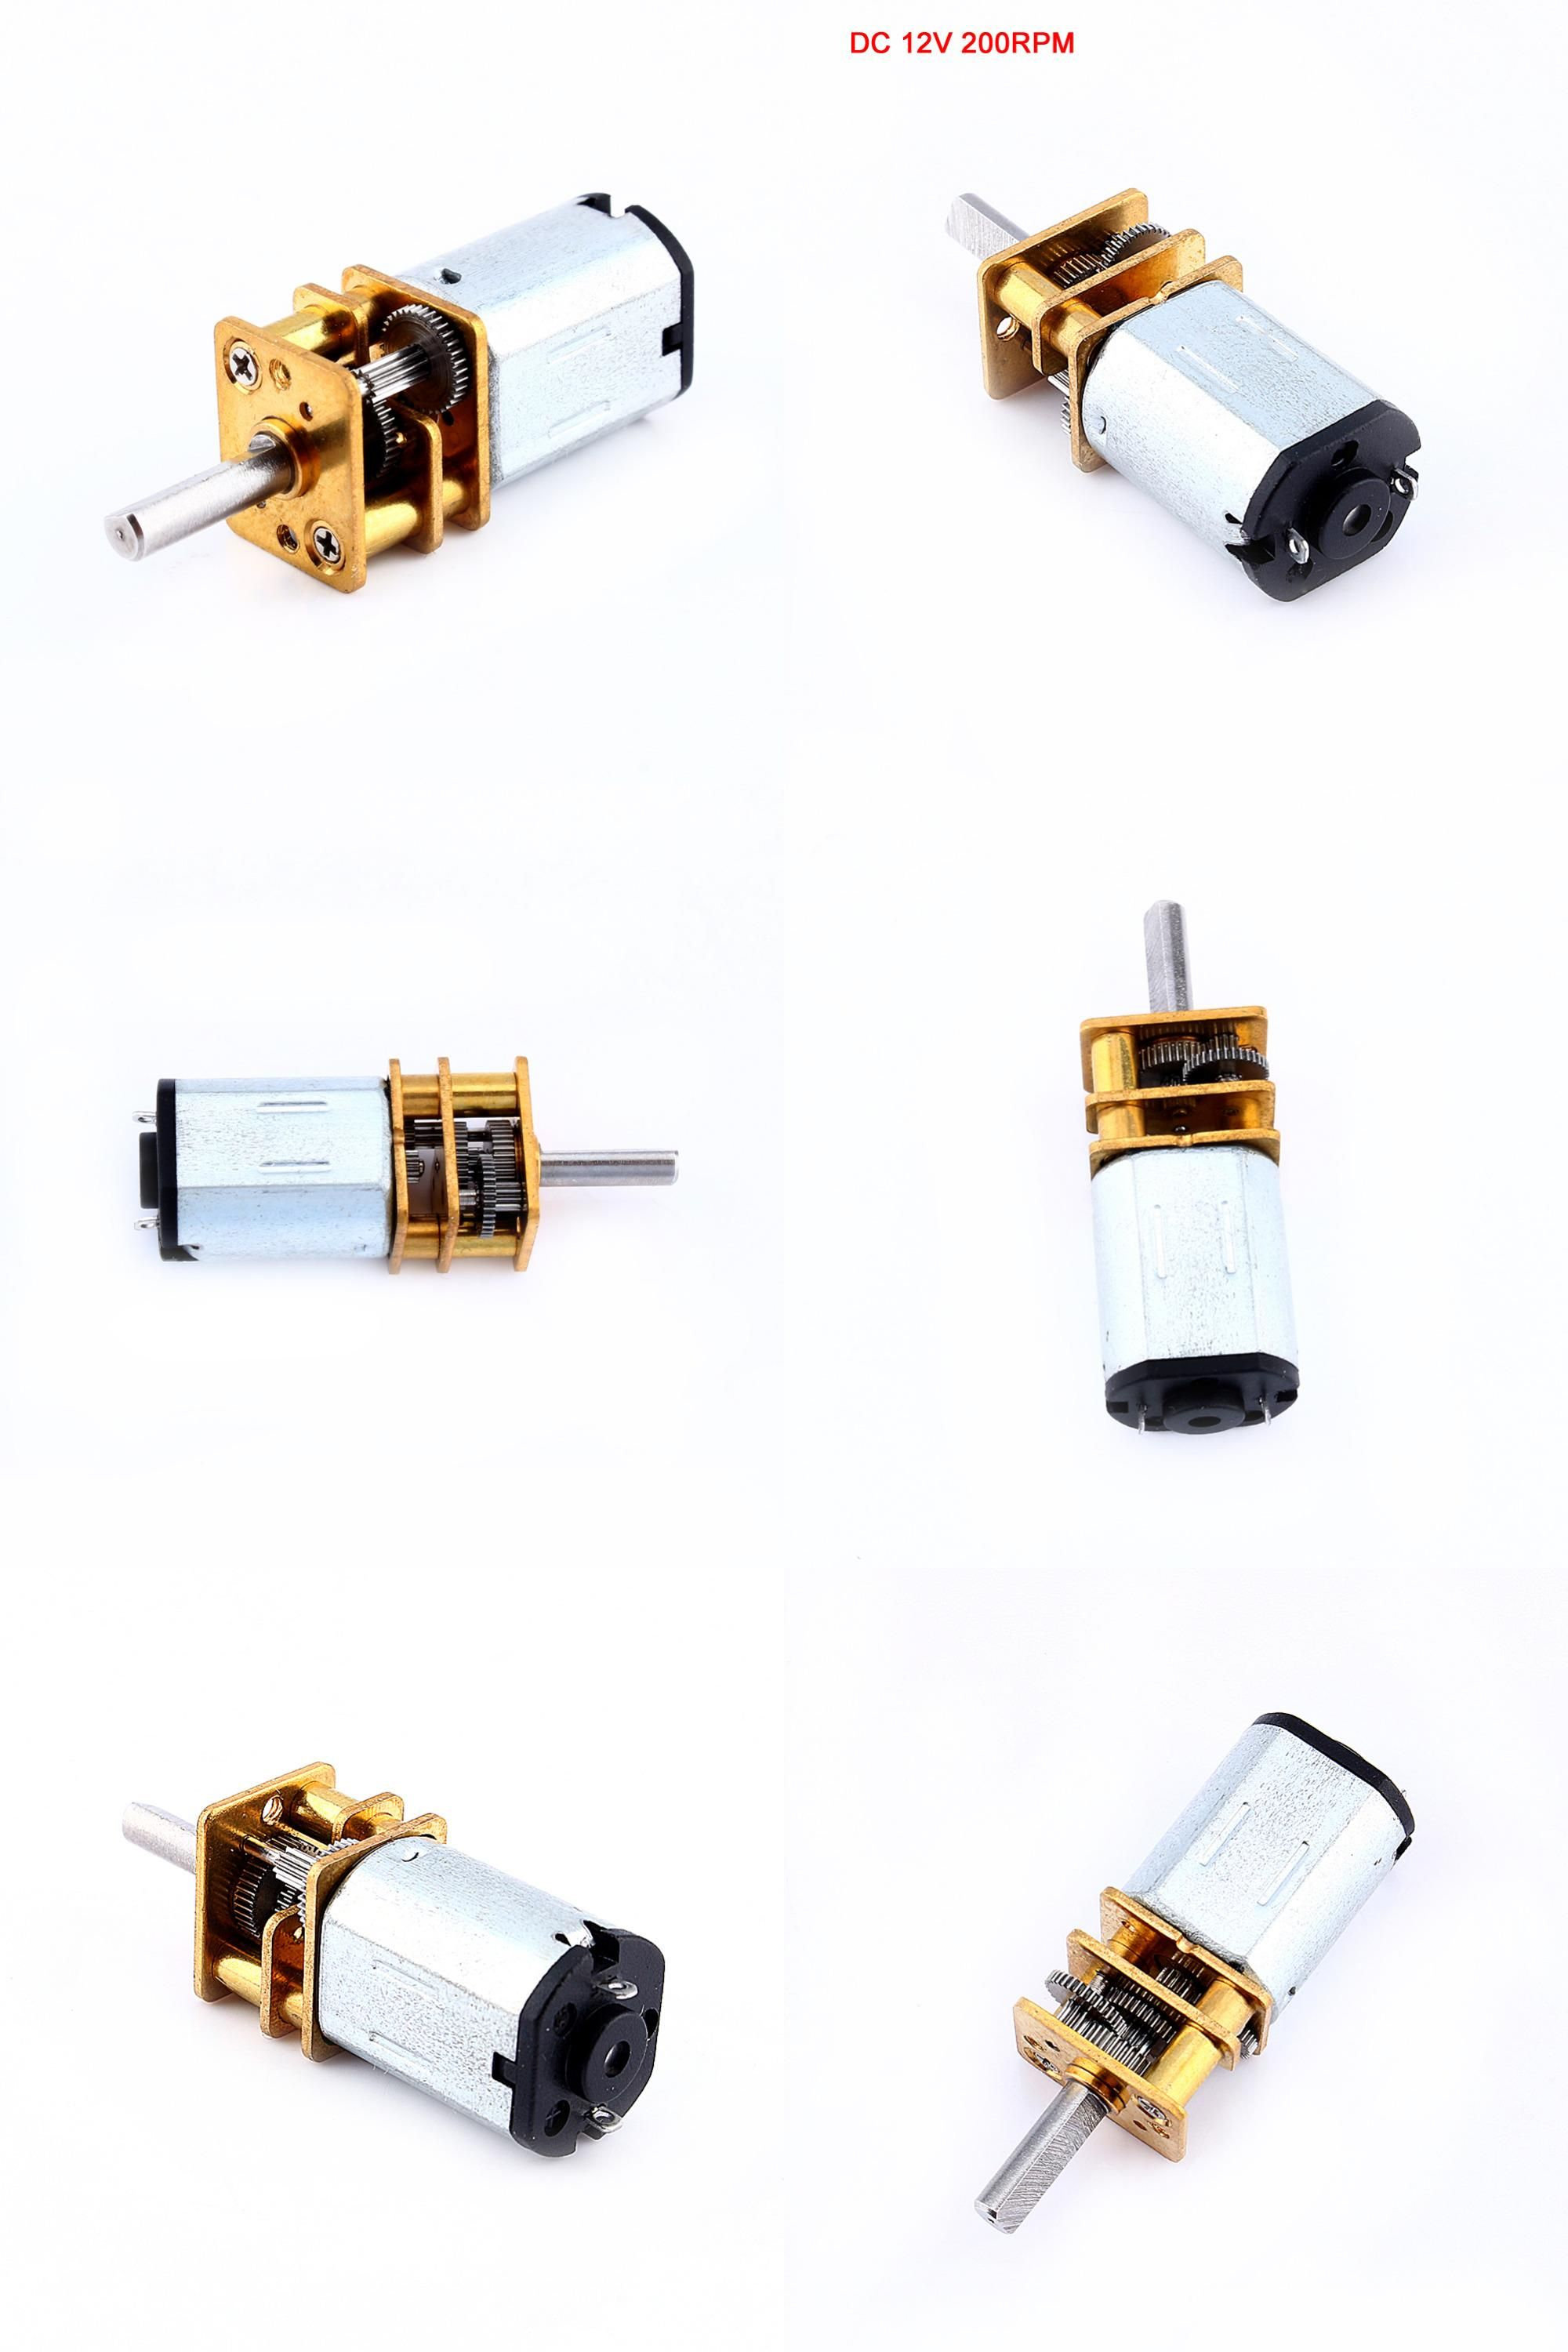 Visit To Buy Dc12v 200rpm Gear Motor N20 Micro Speed Reduction Gear Dc Motor With Metal Gearbox Wheel Adv Motor Speed Usb Flash Drive Stuff To Buy